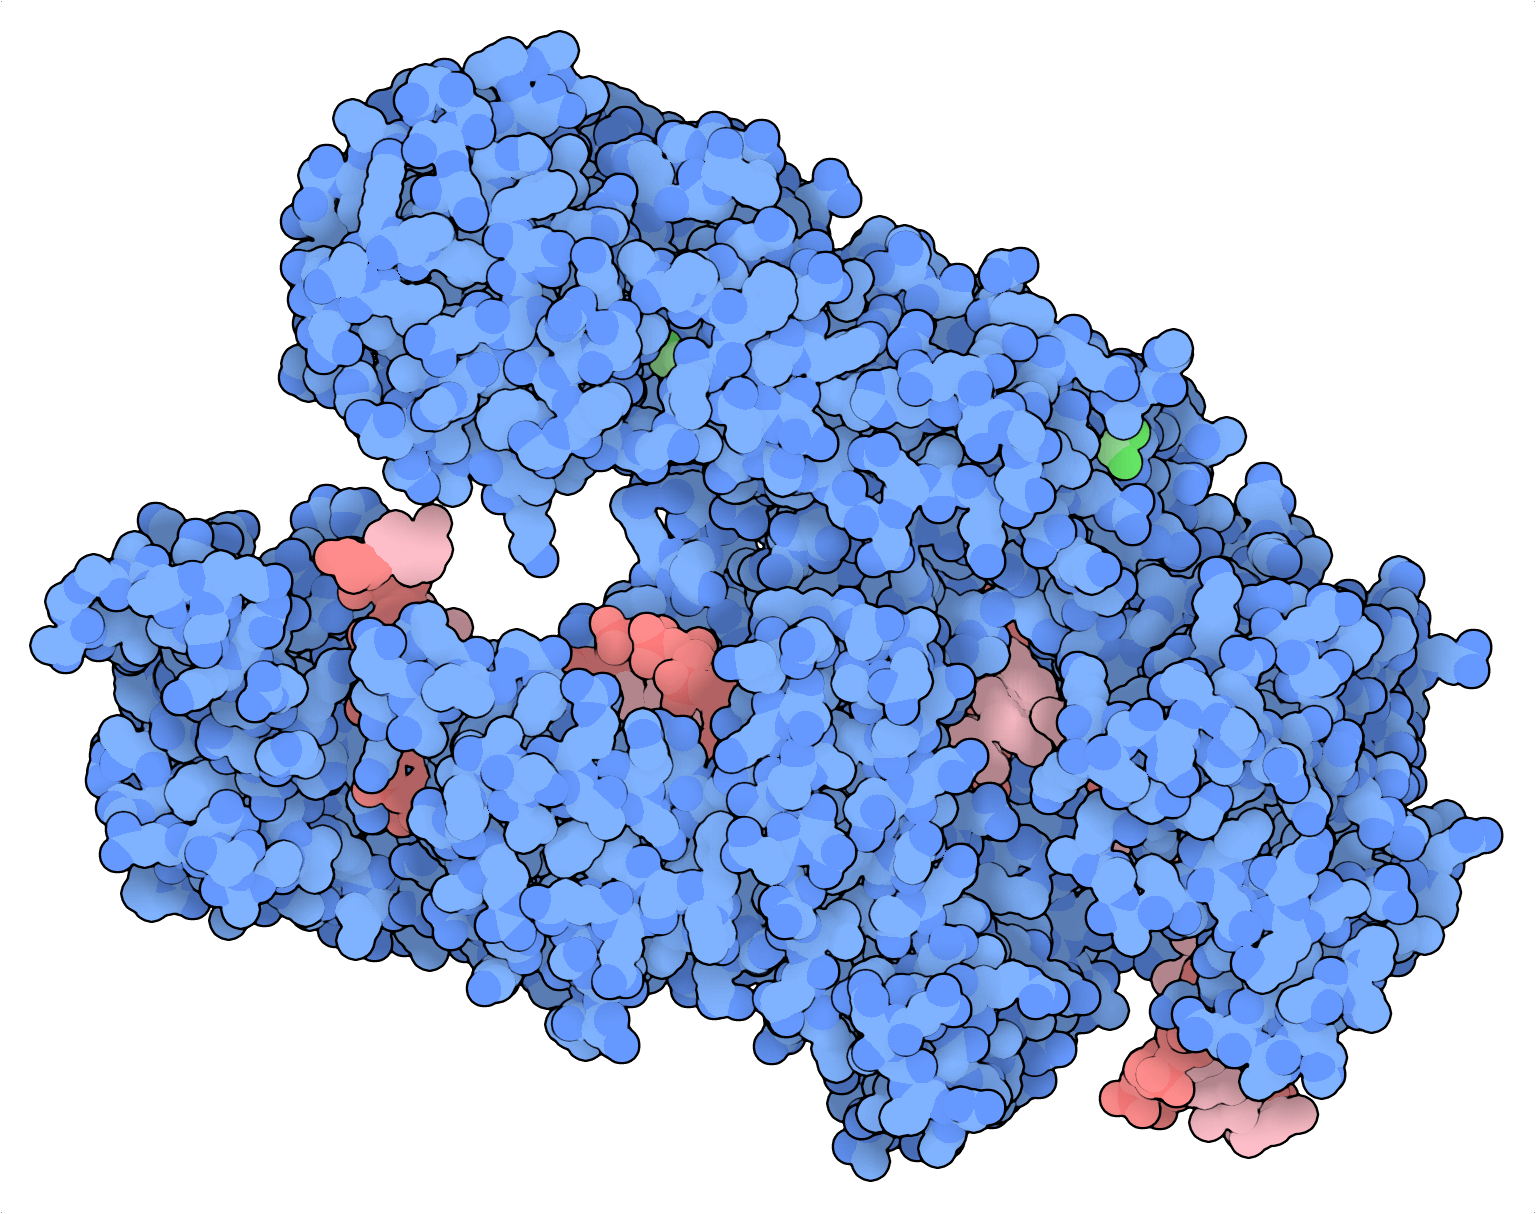 AsCas12a protein structure